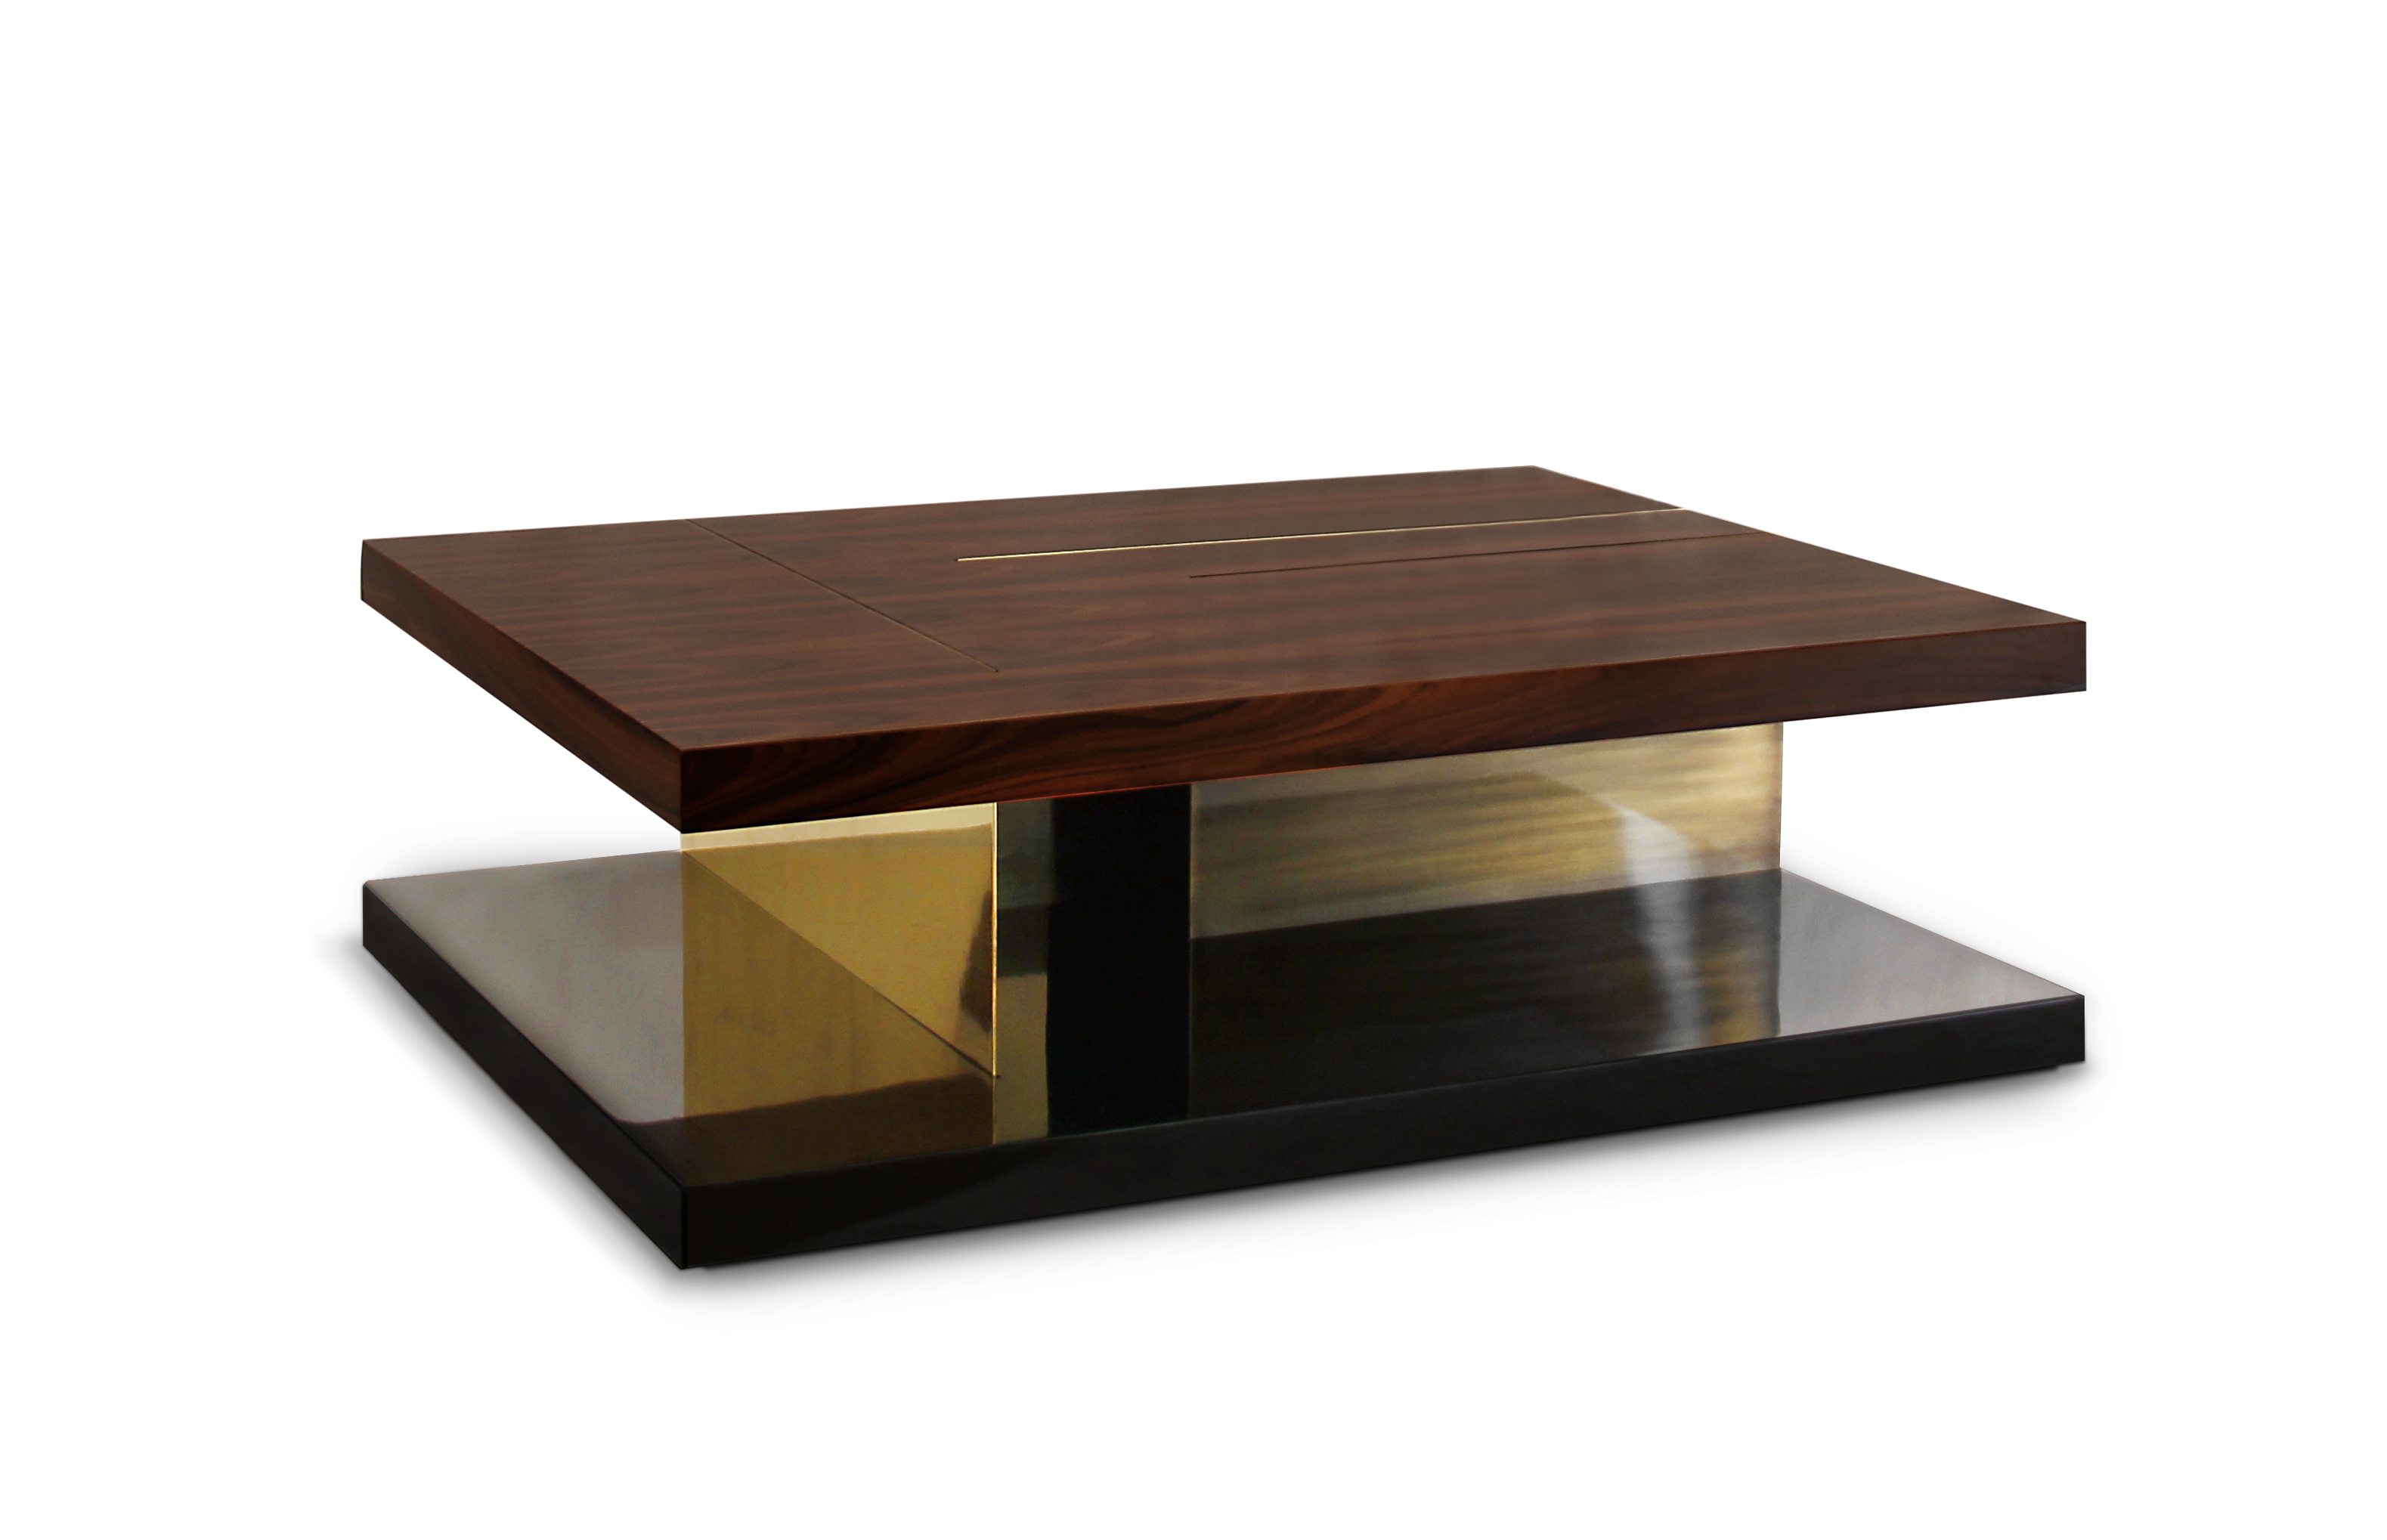 Lallan wood coffee table mid century modern design by brabbu for Wood coffee table kits